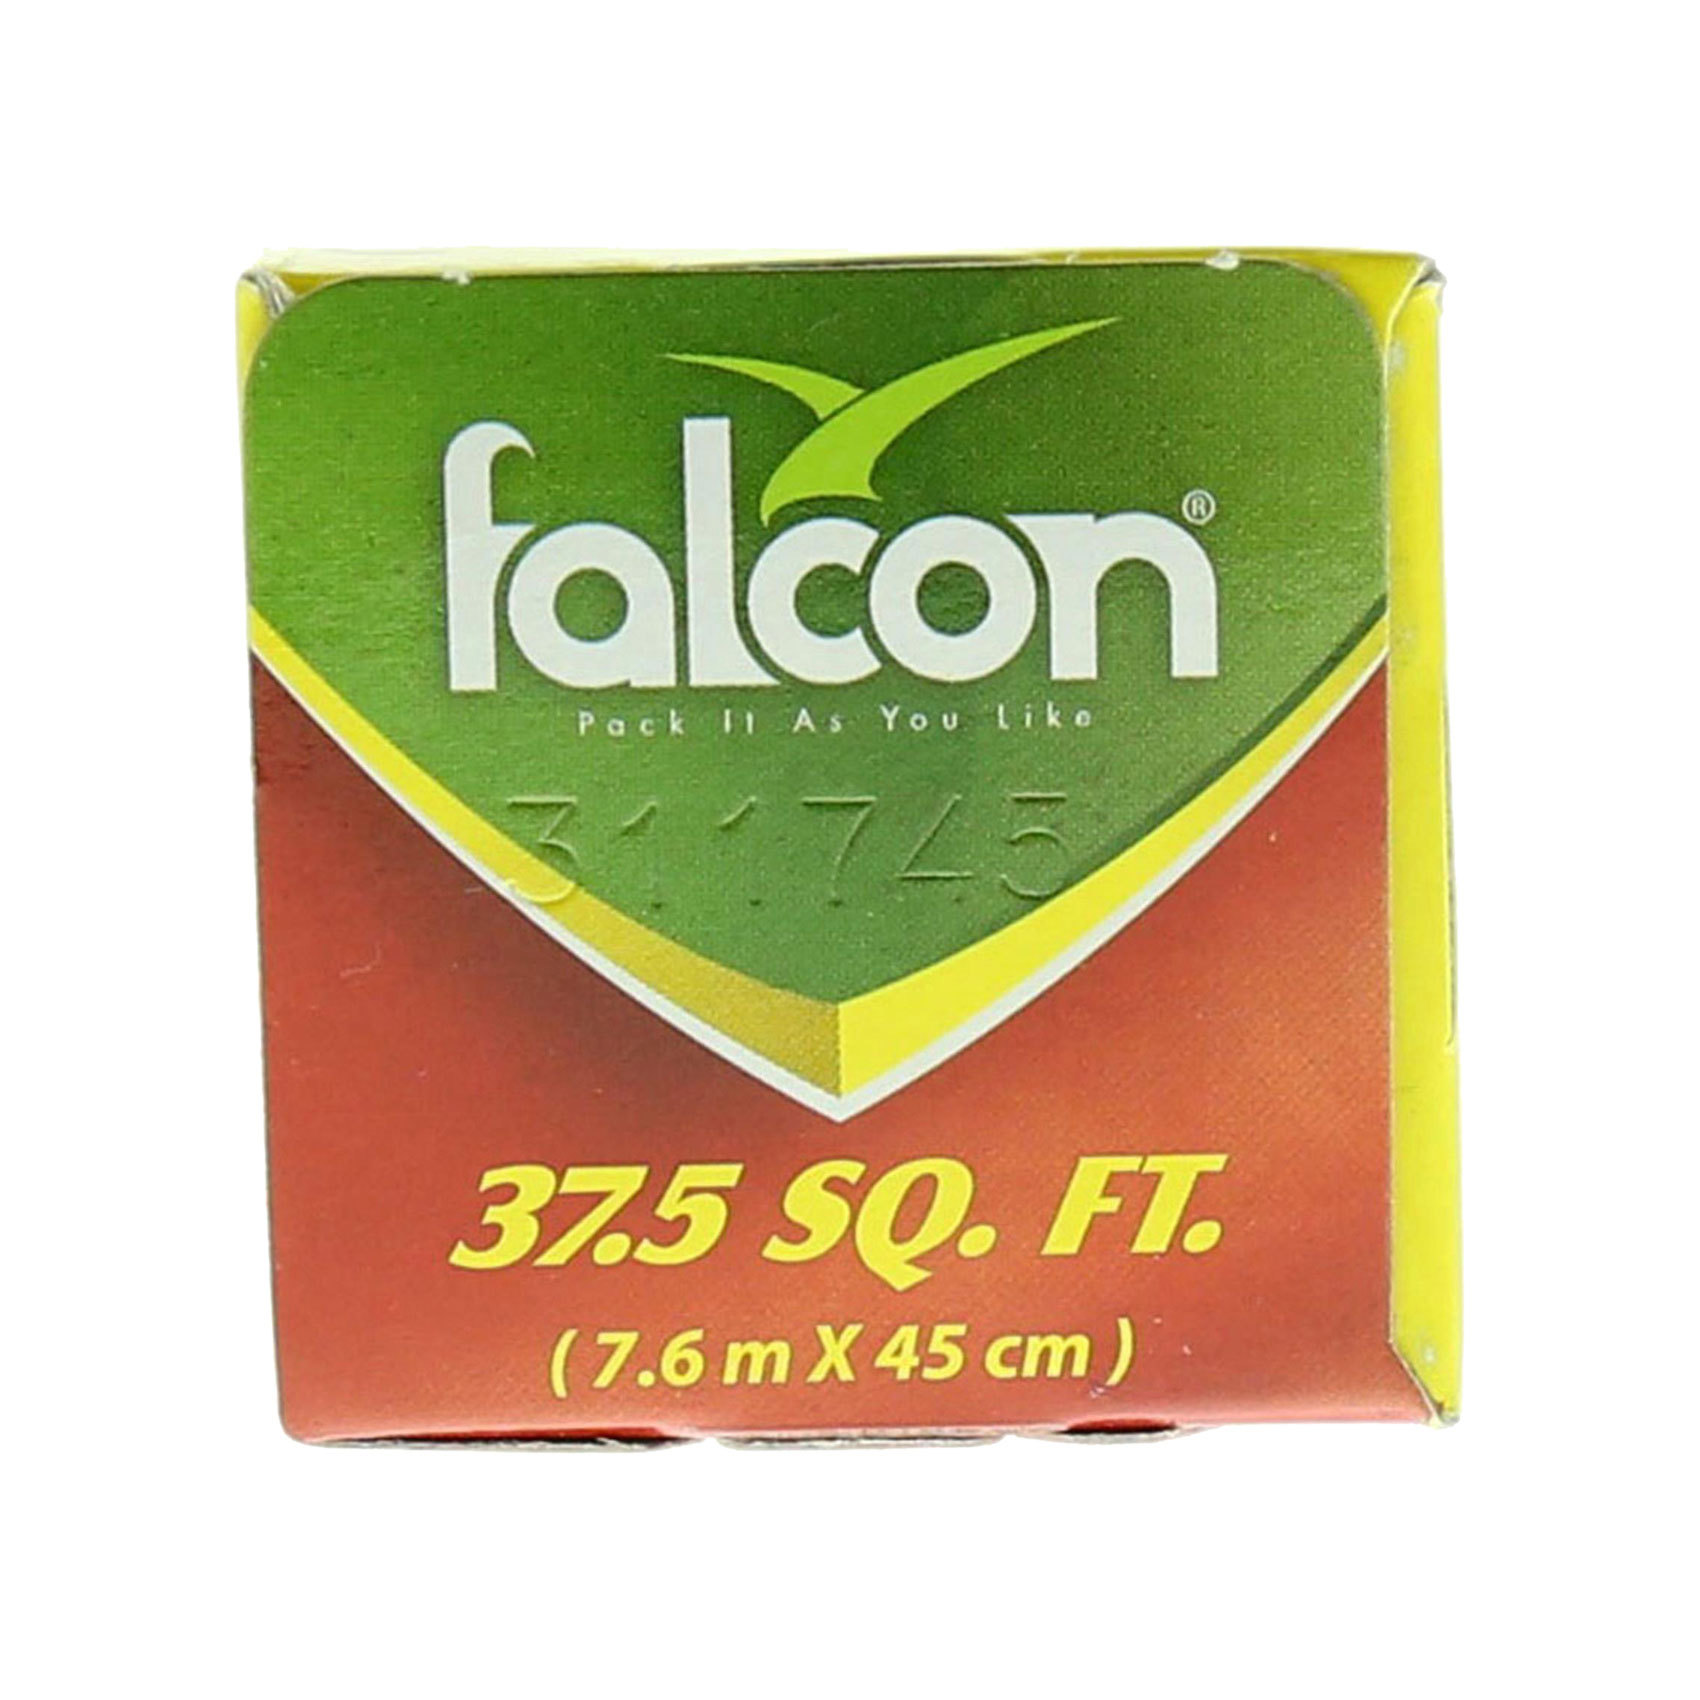 FALCON ALUM FOIL 37.5 SQR. FT